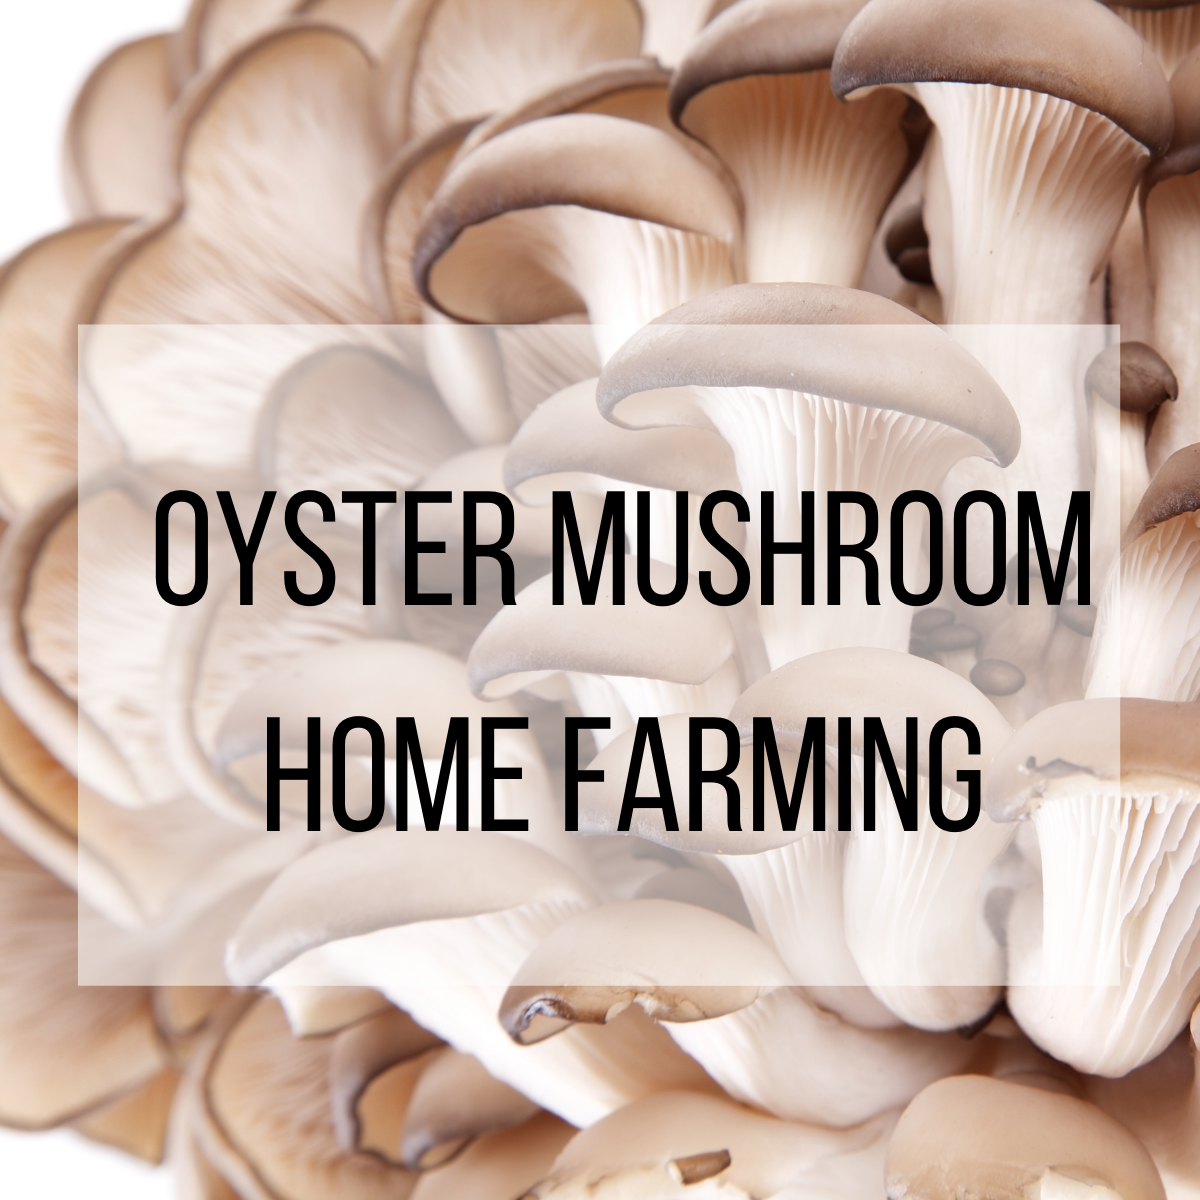 This article will provide guidance on how to set up an oyster mushroom growing farm in your own home.